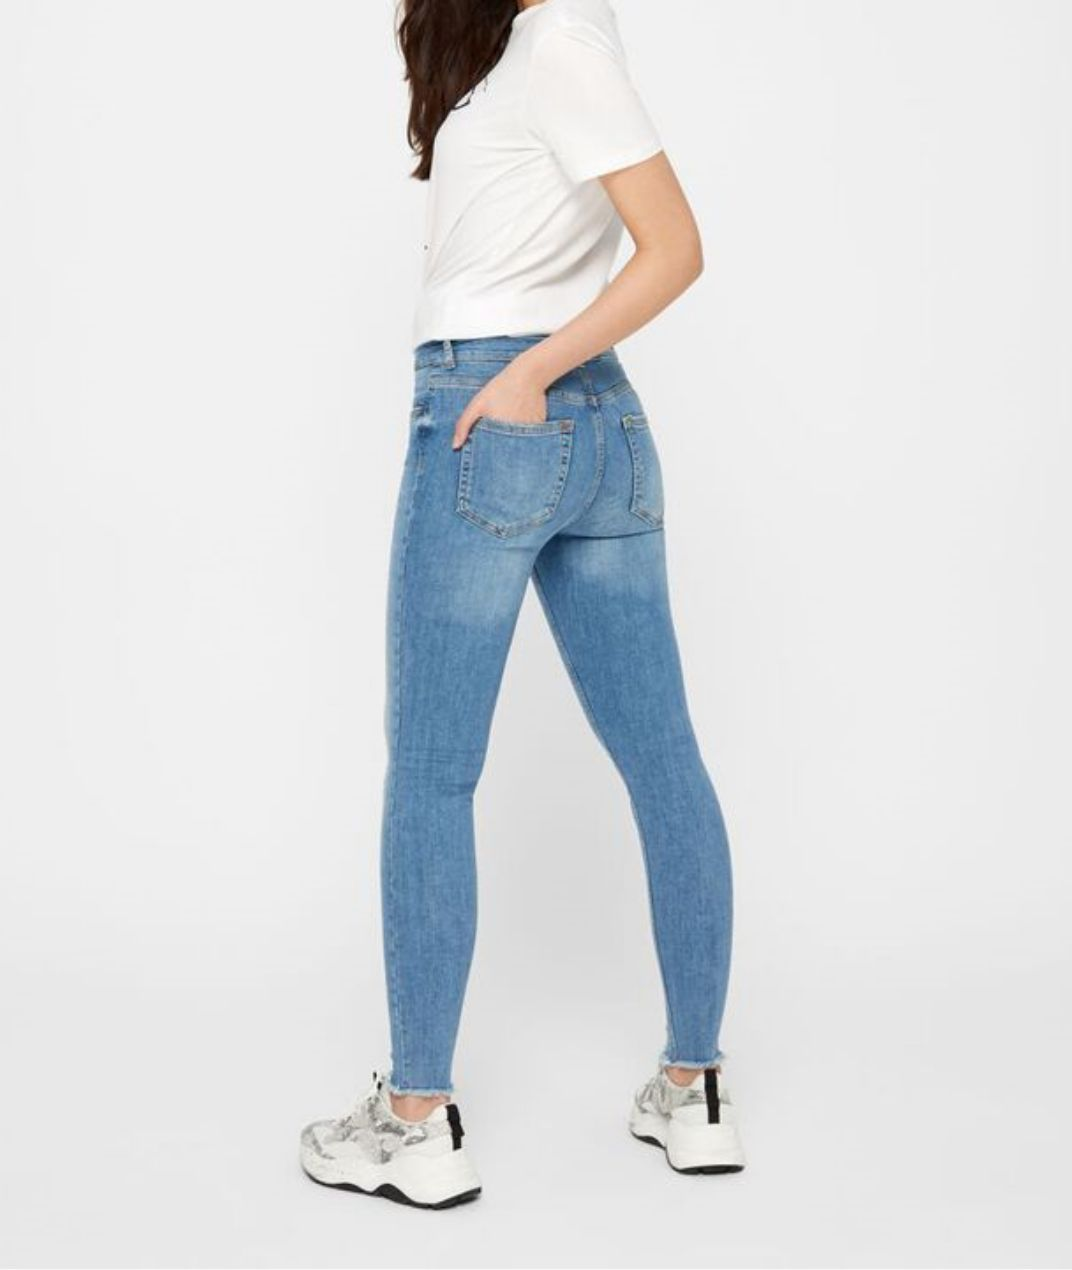 Jeans pcdelly